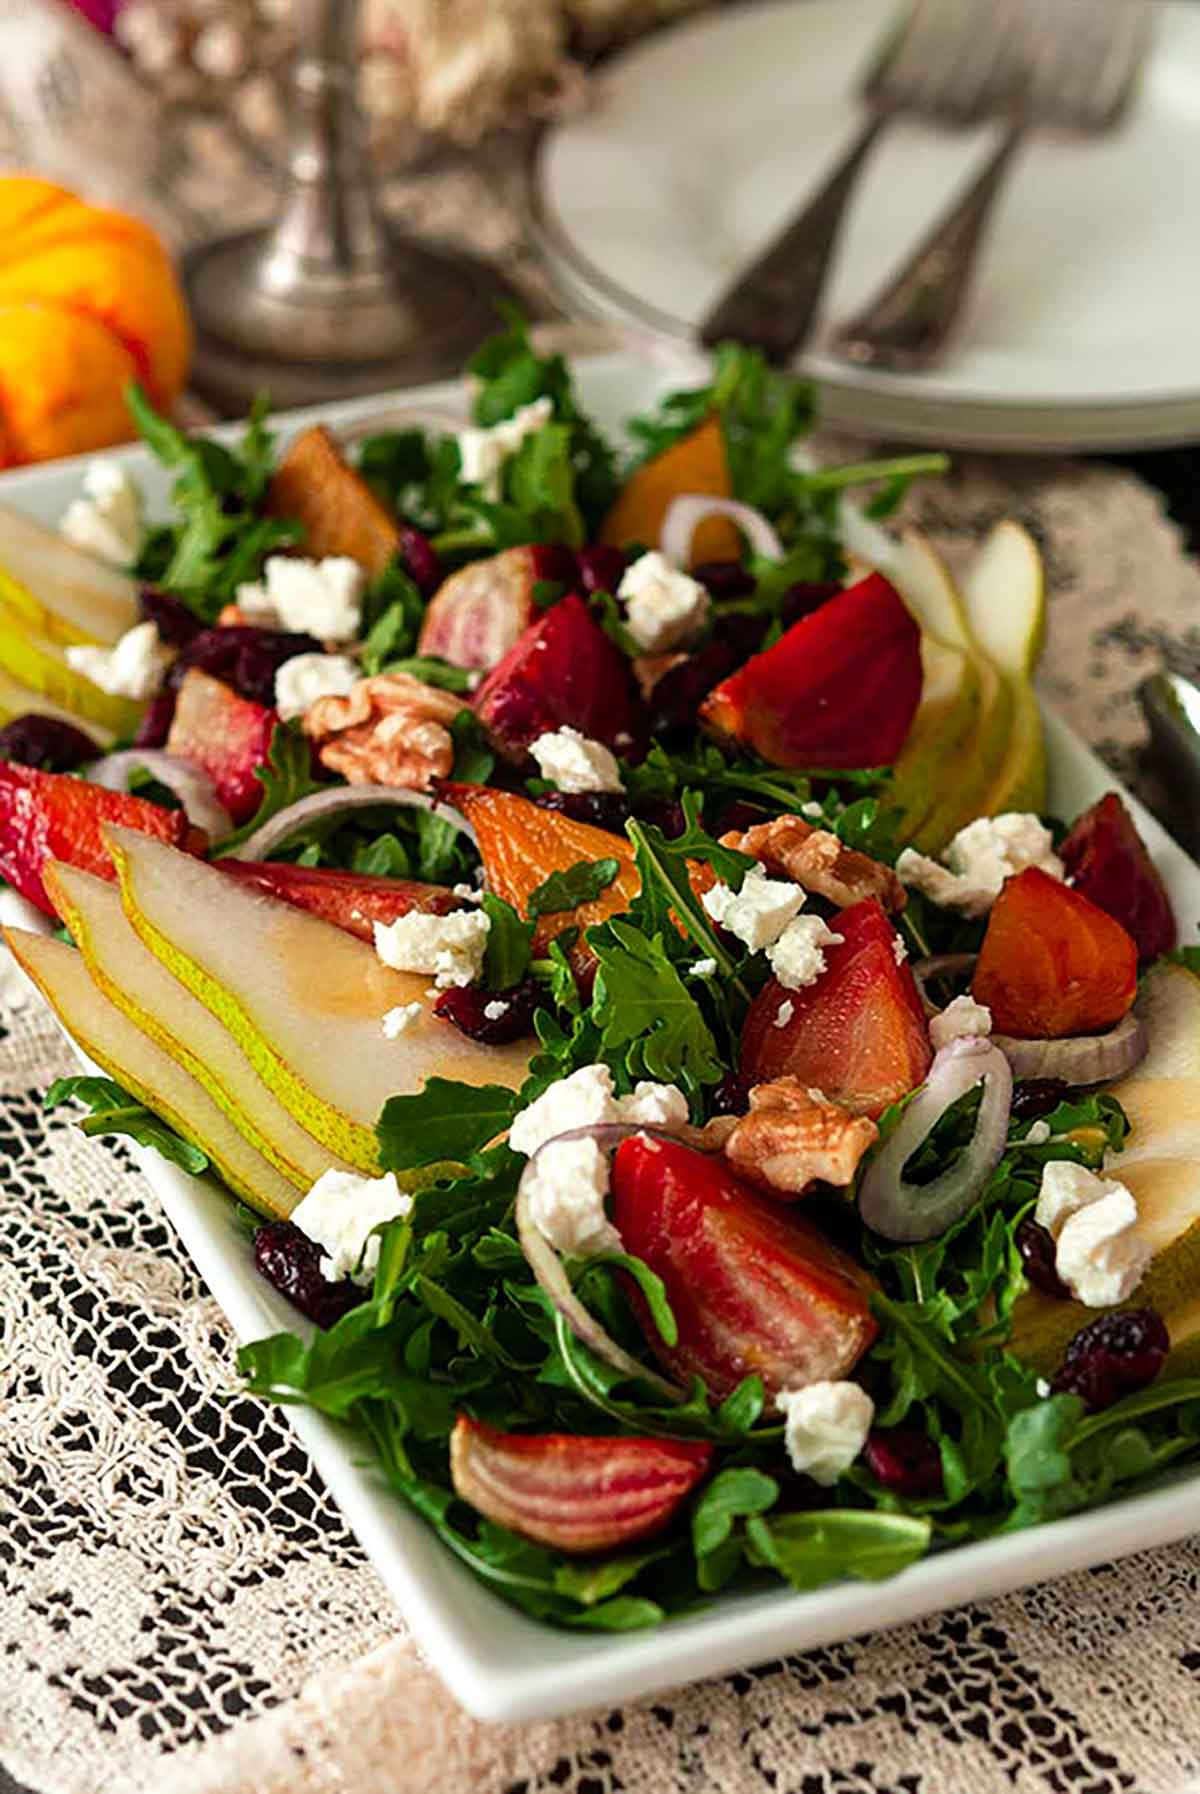 A salad with colorful vegetables, pears, berries and nuts on a lace table cloth with plates and forks in the background.